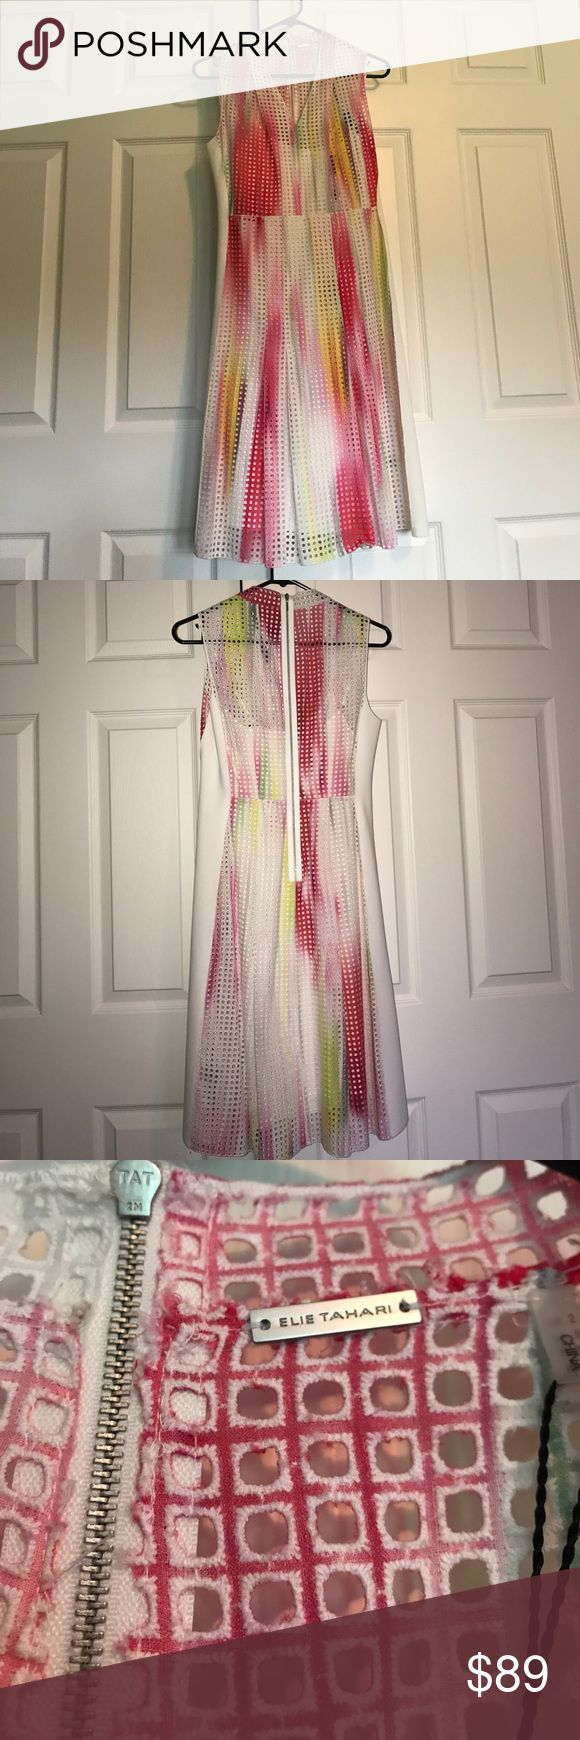 Elie Tahari Dress New with tags! 100% Cotton. Never been worn Elie Tahari dress. Comes in two pieces, a slip and the cover dress. Beautiful colors! 👗 Please feel free to reach out with any questions or concerns! May lower price through PP! Elie Tahari Dresses Mini